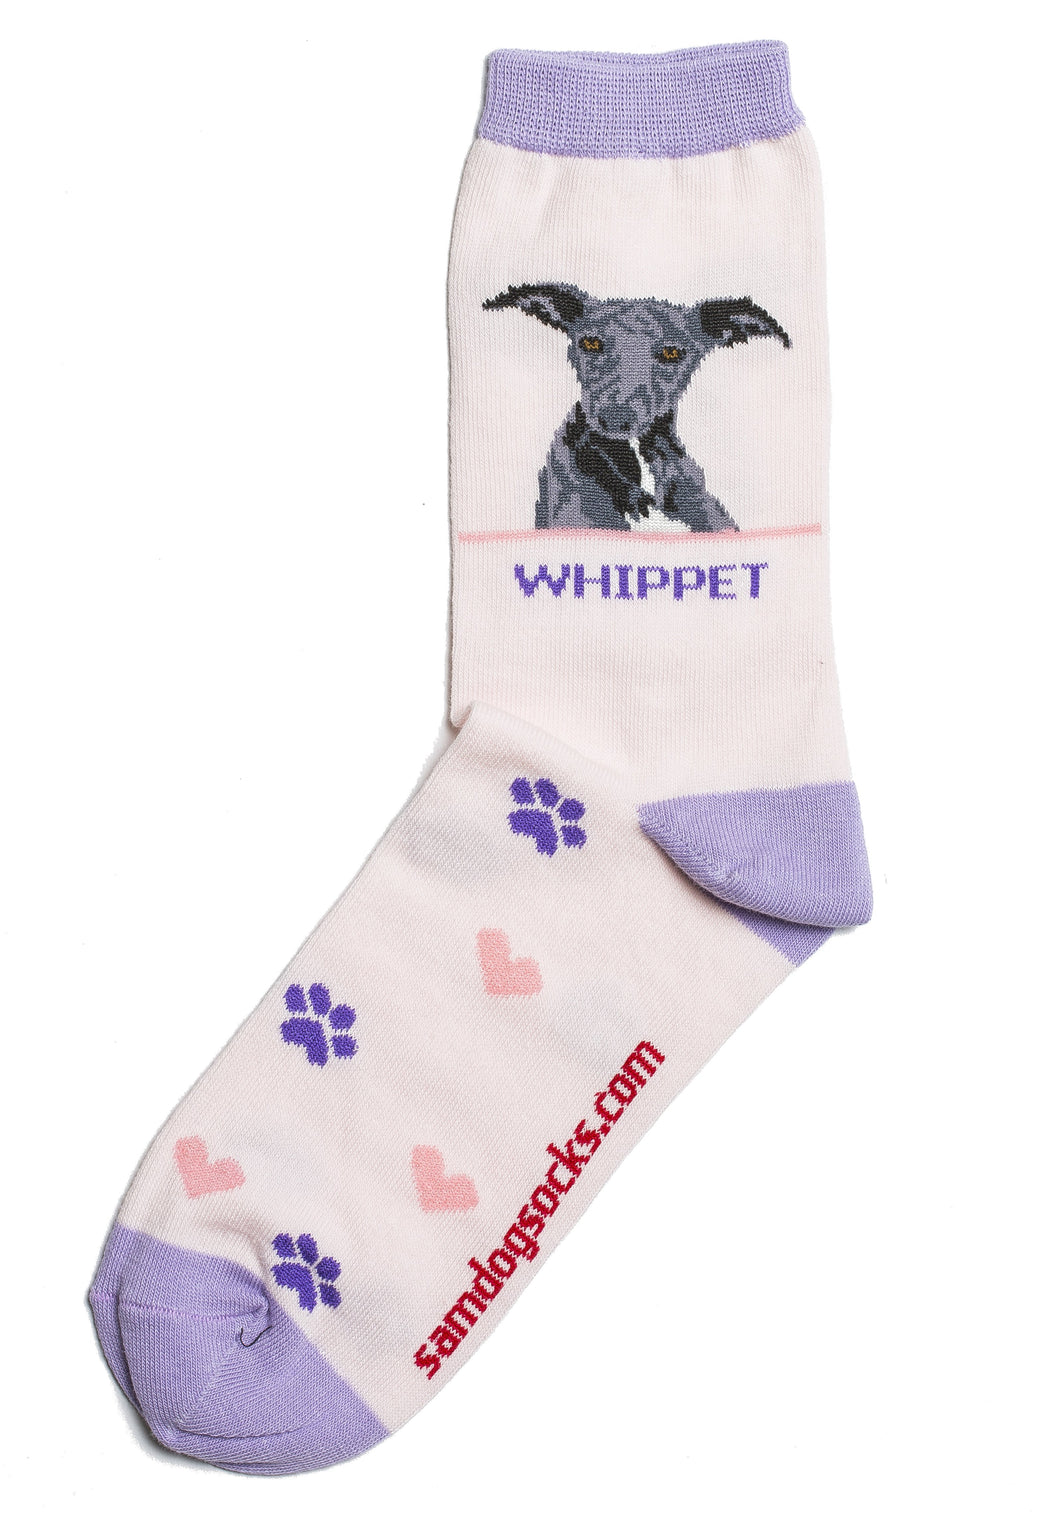 Whippet Dog Socks - samnoveltysocks.com